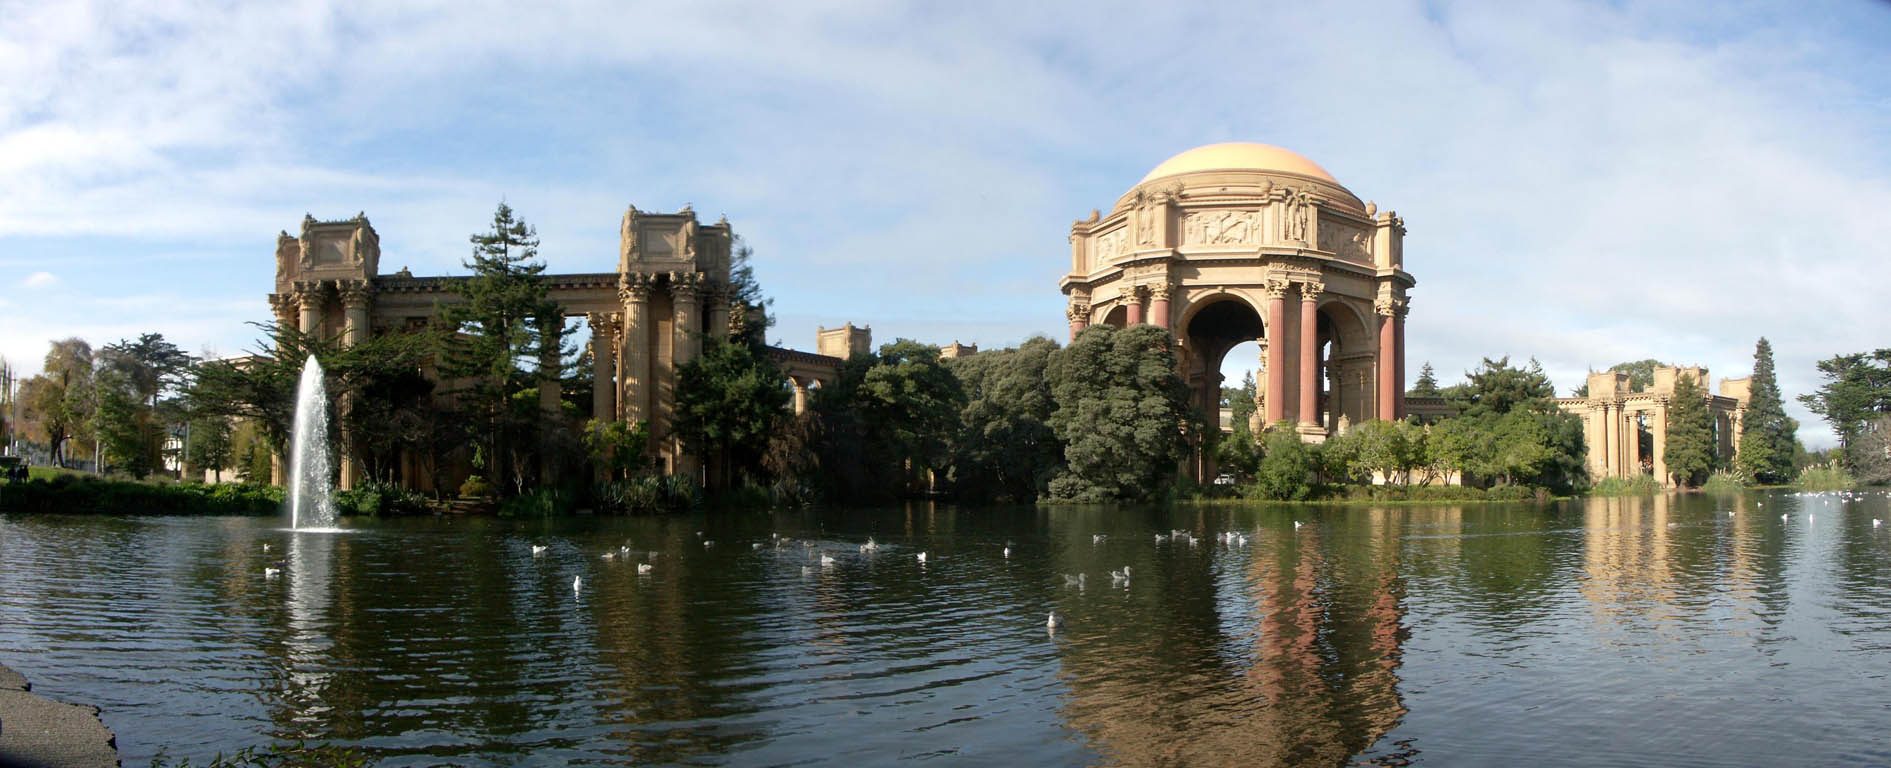 Palace Of Fine Arts To Sf Design Center Henry Street